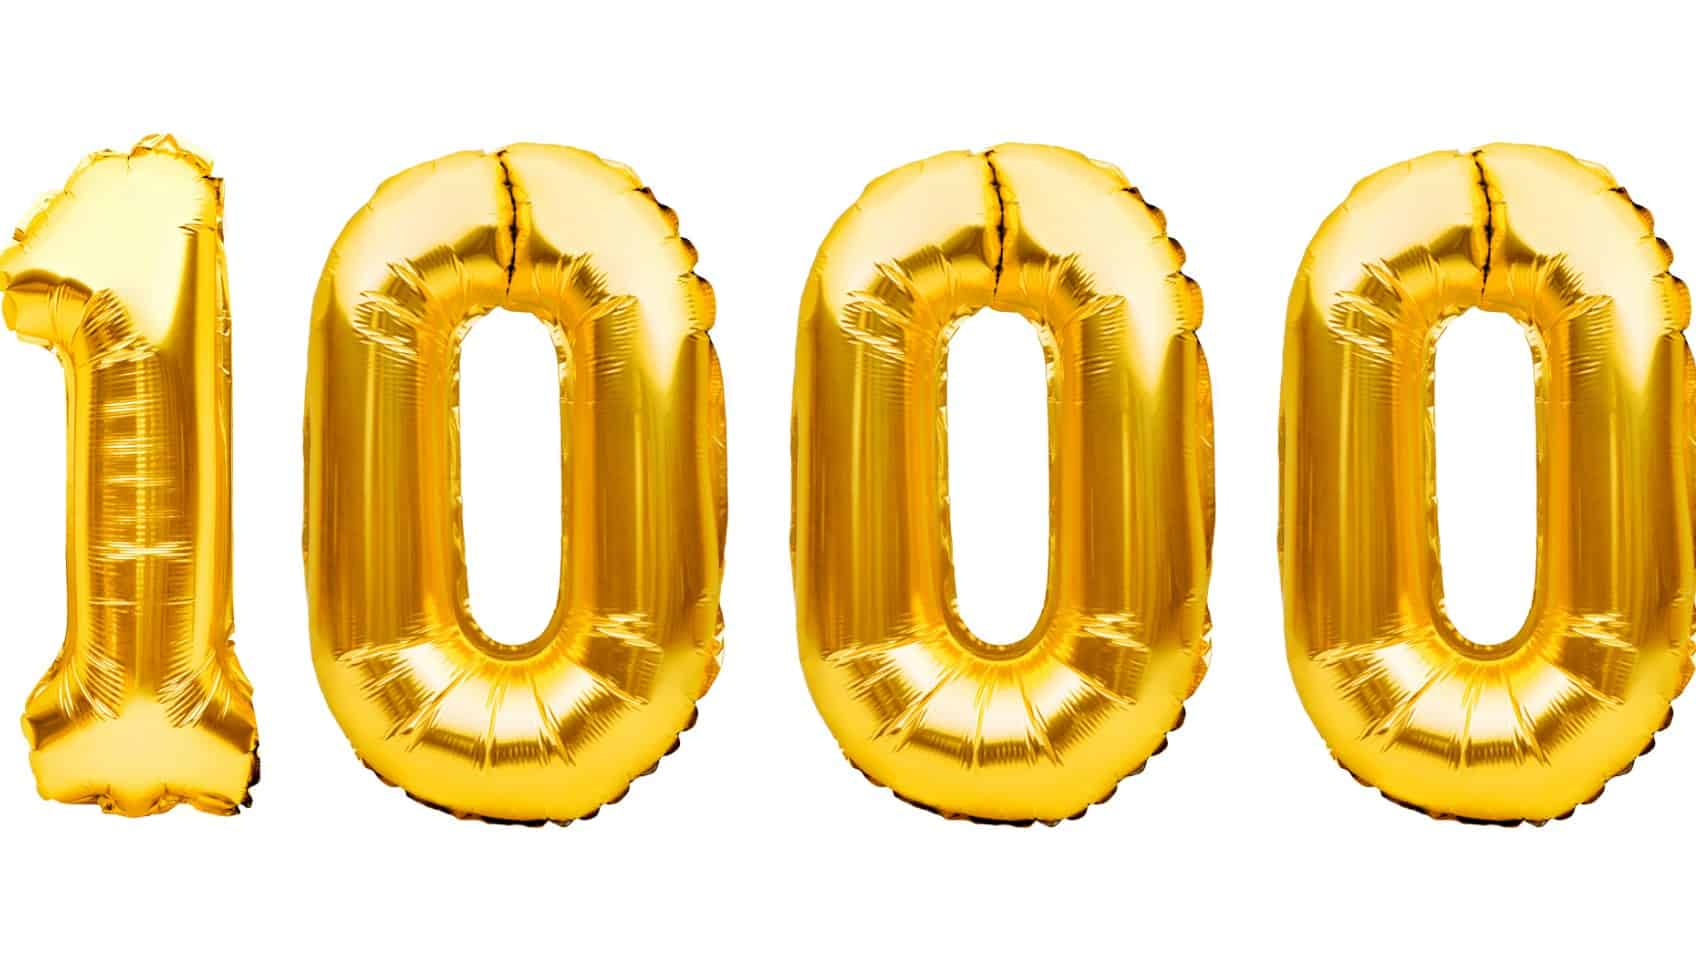 success of nearmap share price represented by gold baloons spelling out one thousand